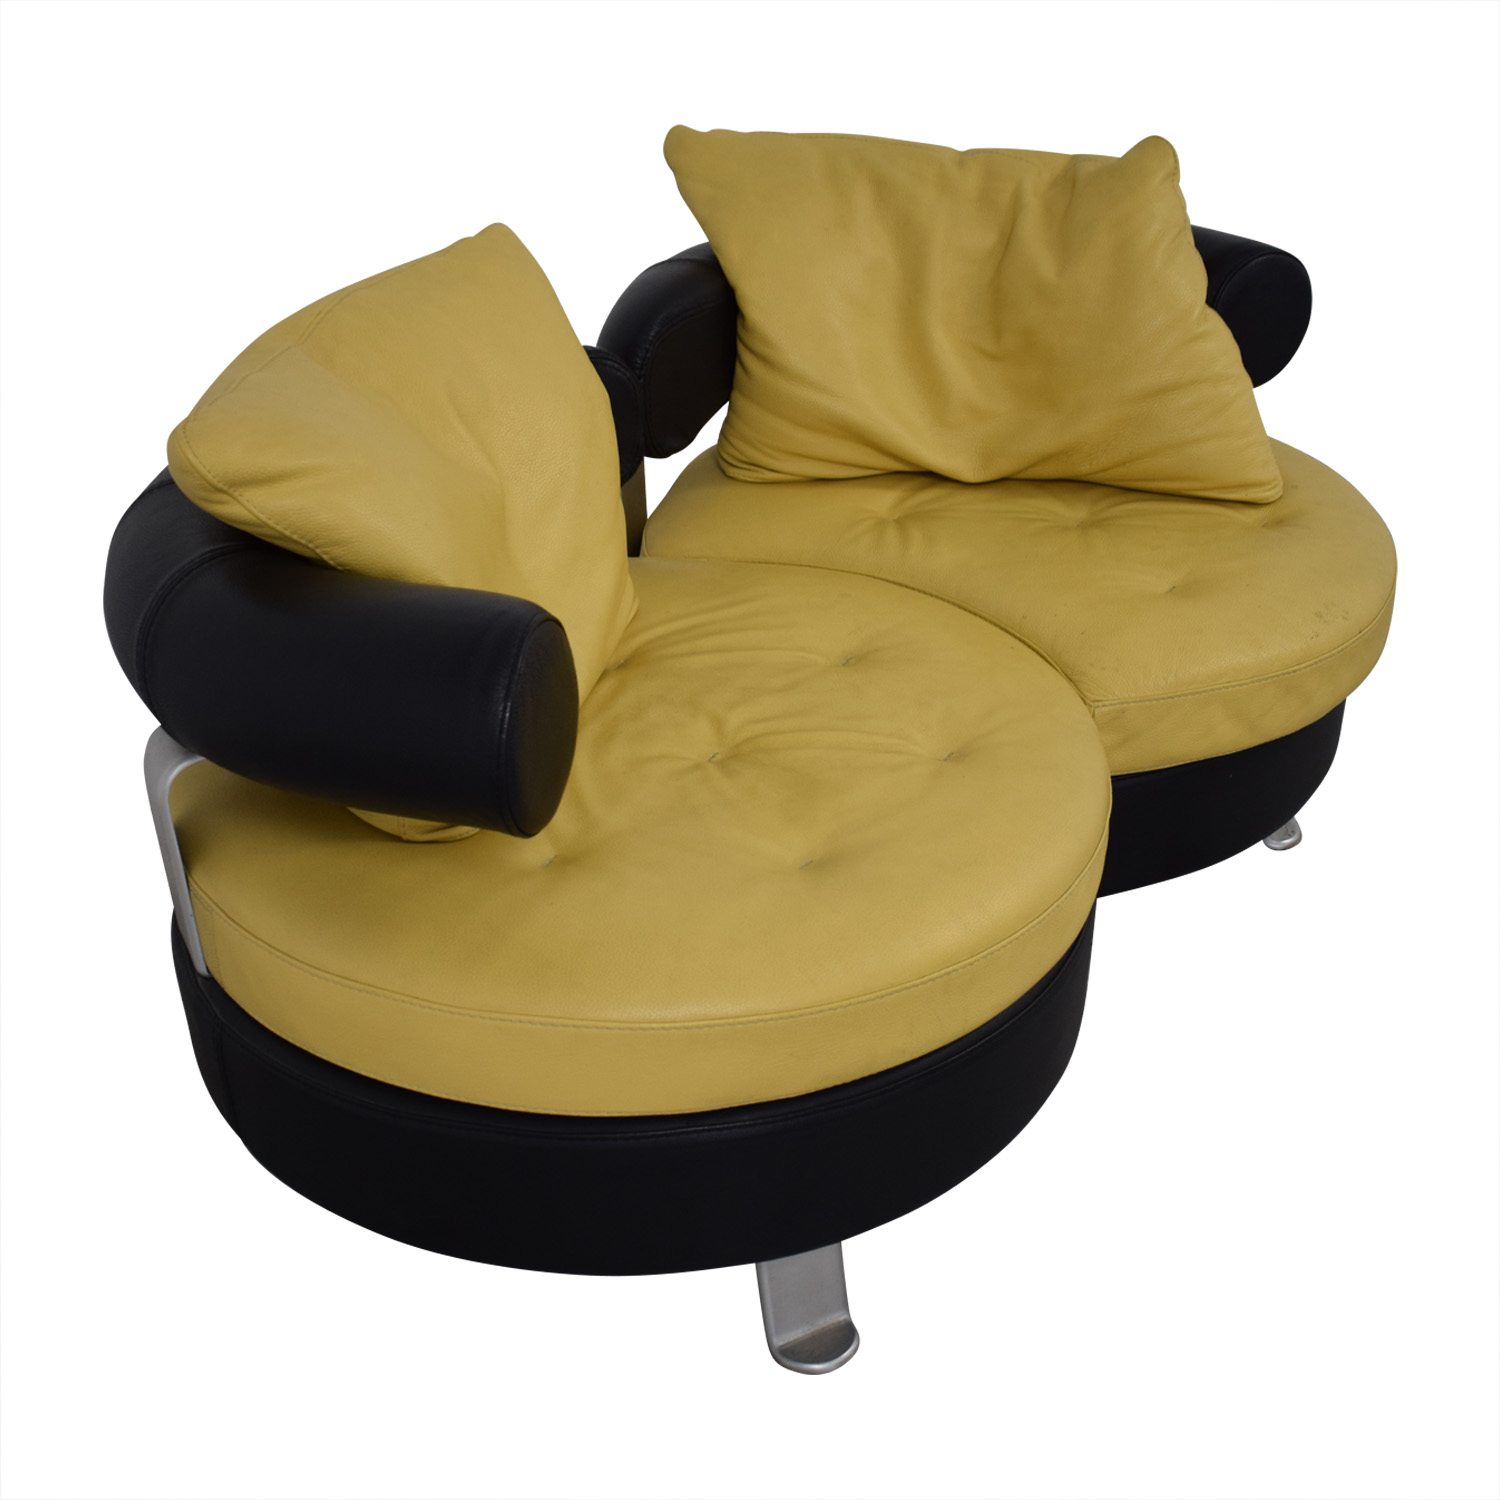 Formenti Formenti Swivel Loveseat for sale